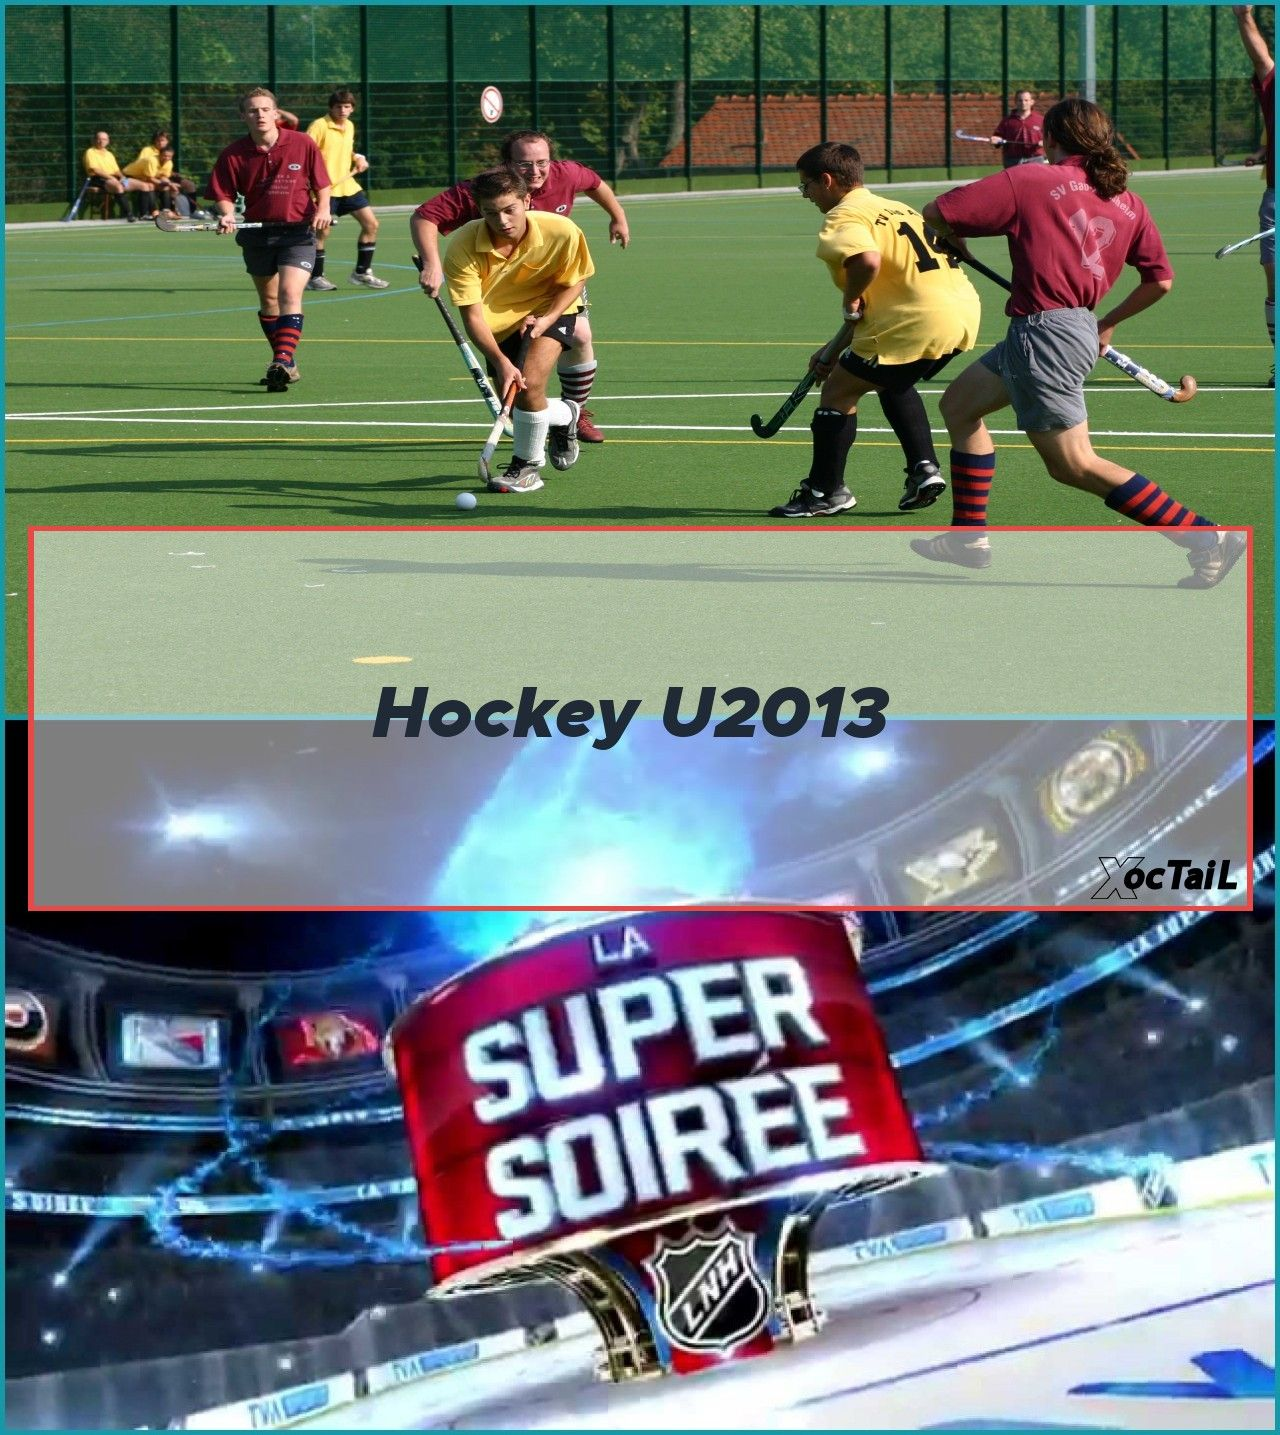 Hockey u2013 tva super sports soiree hockey open в 2020 г